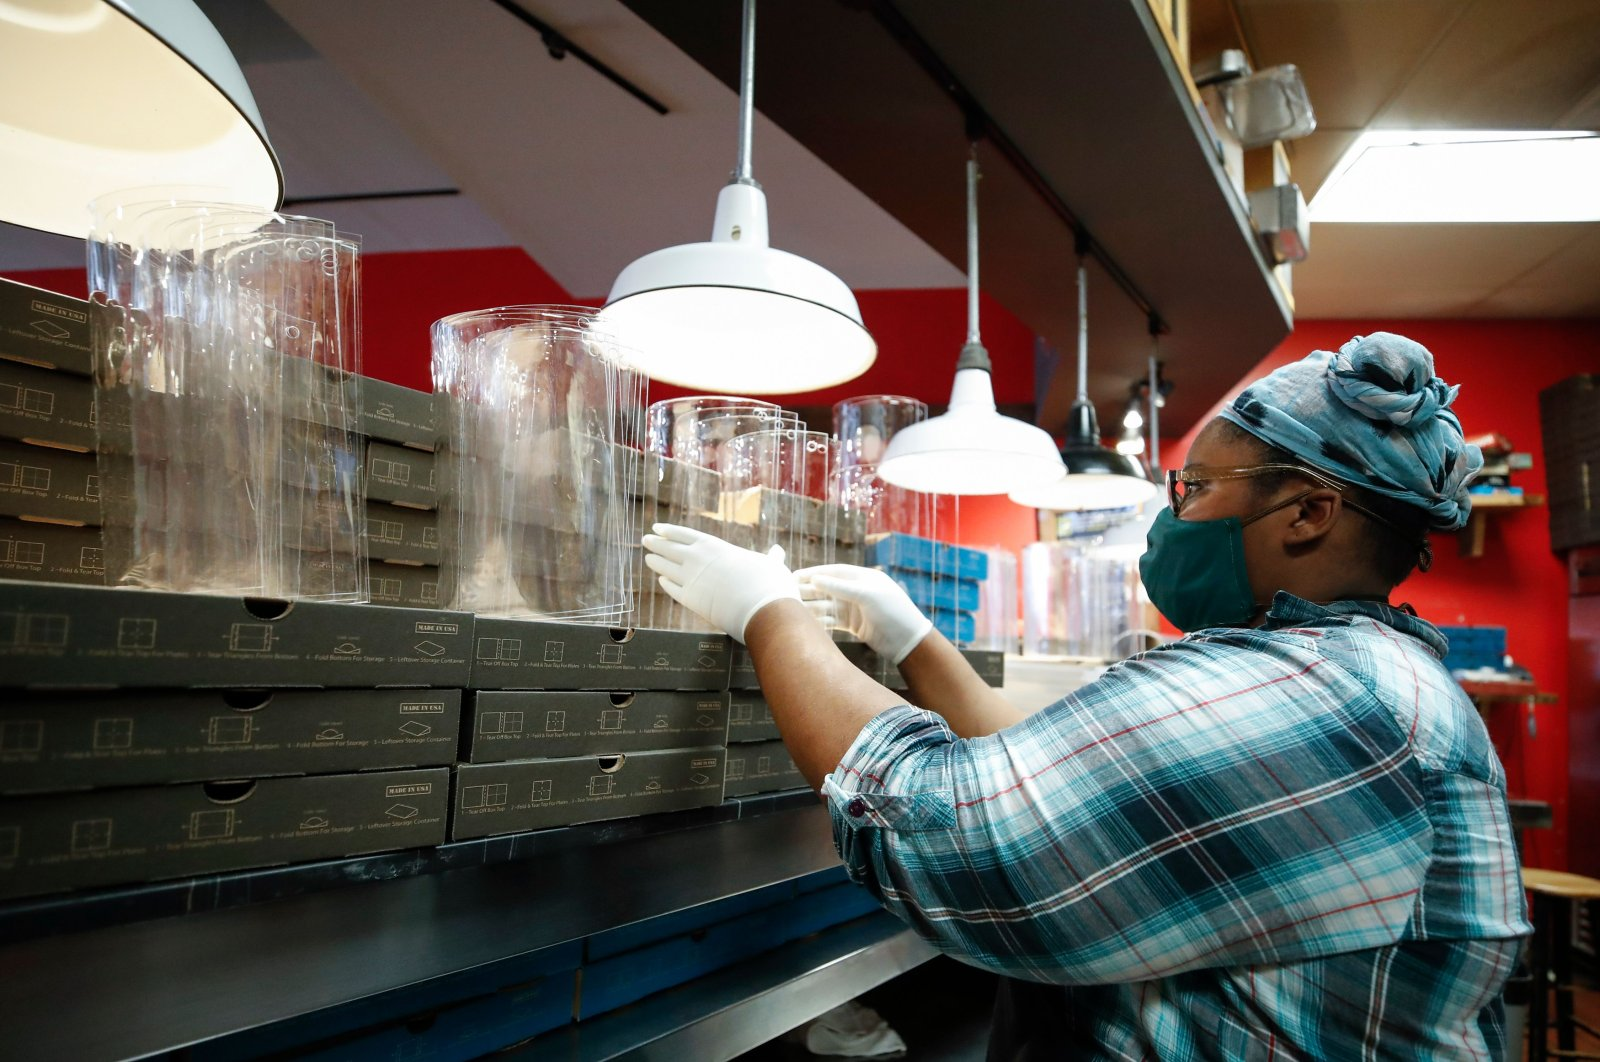 An employee makes acrylic face shields for front line responders at Dimo's Pizza in Chicago, Illinois, April 16, 2020. (AFP Photo)